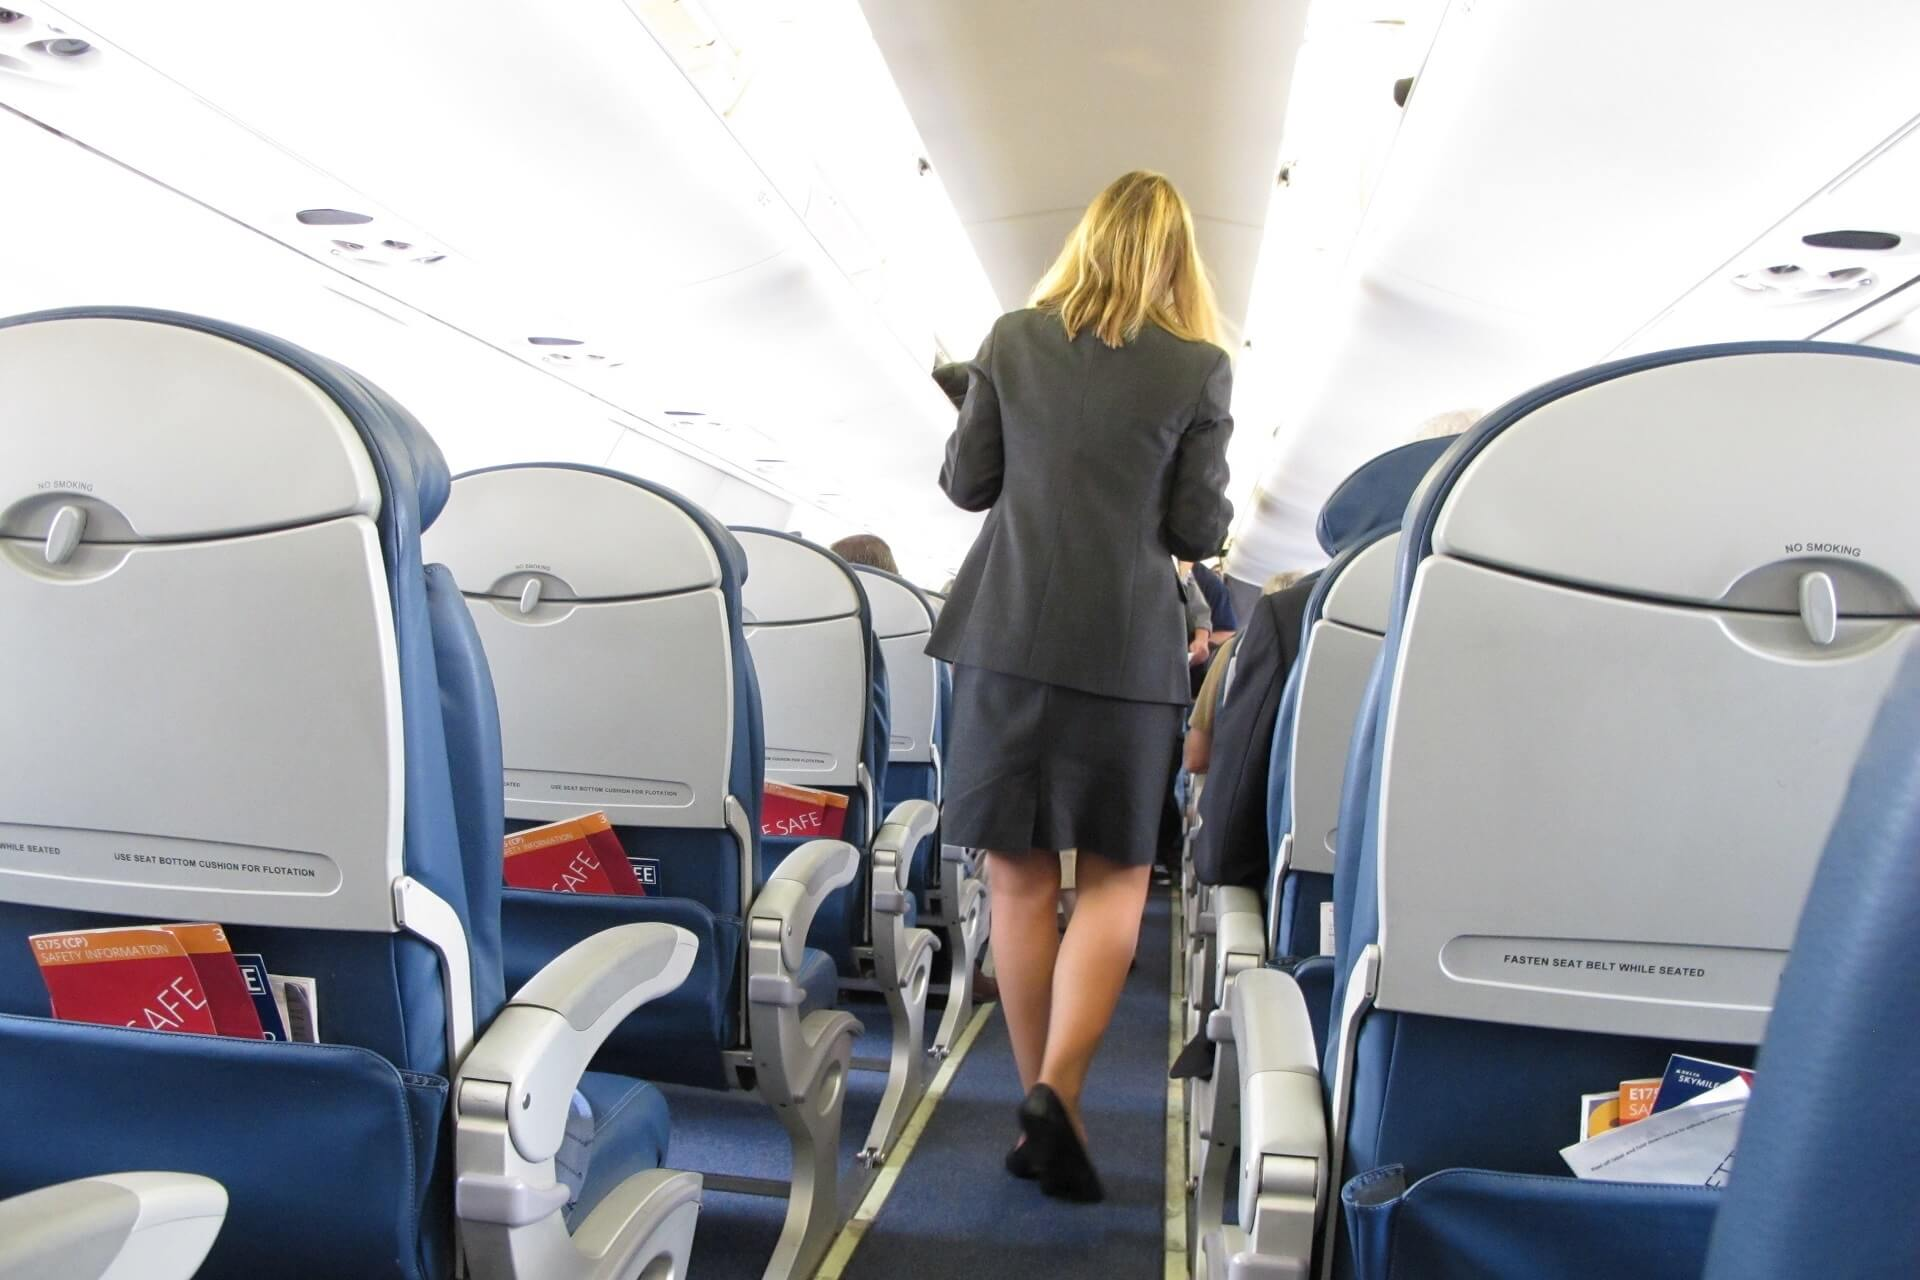 The Most Unpleasant Secrets From Airplanes